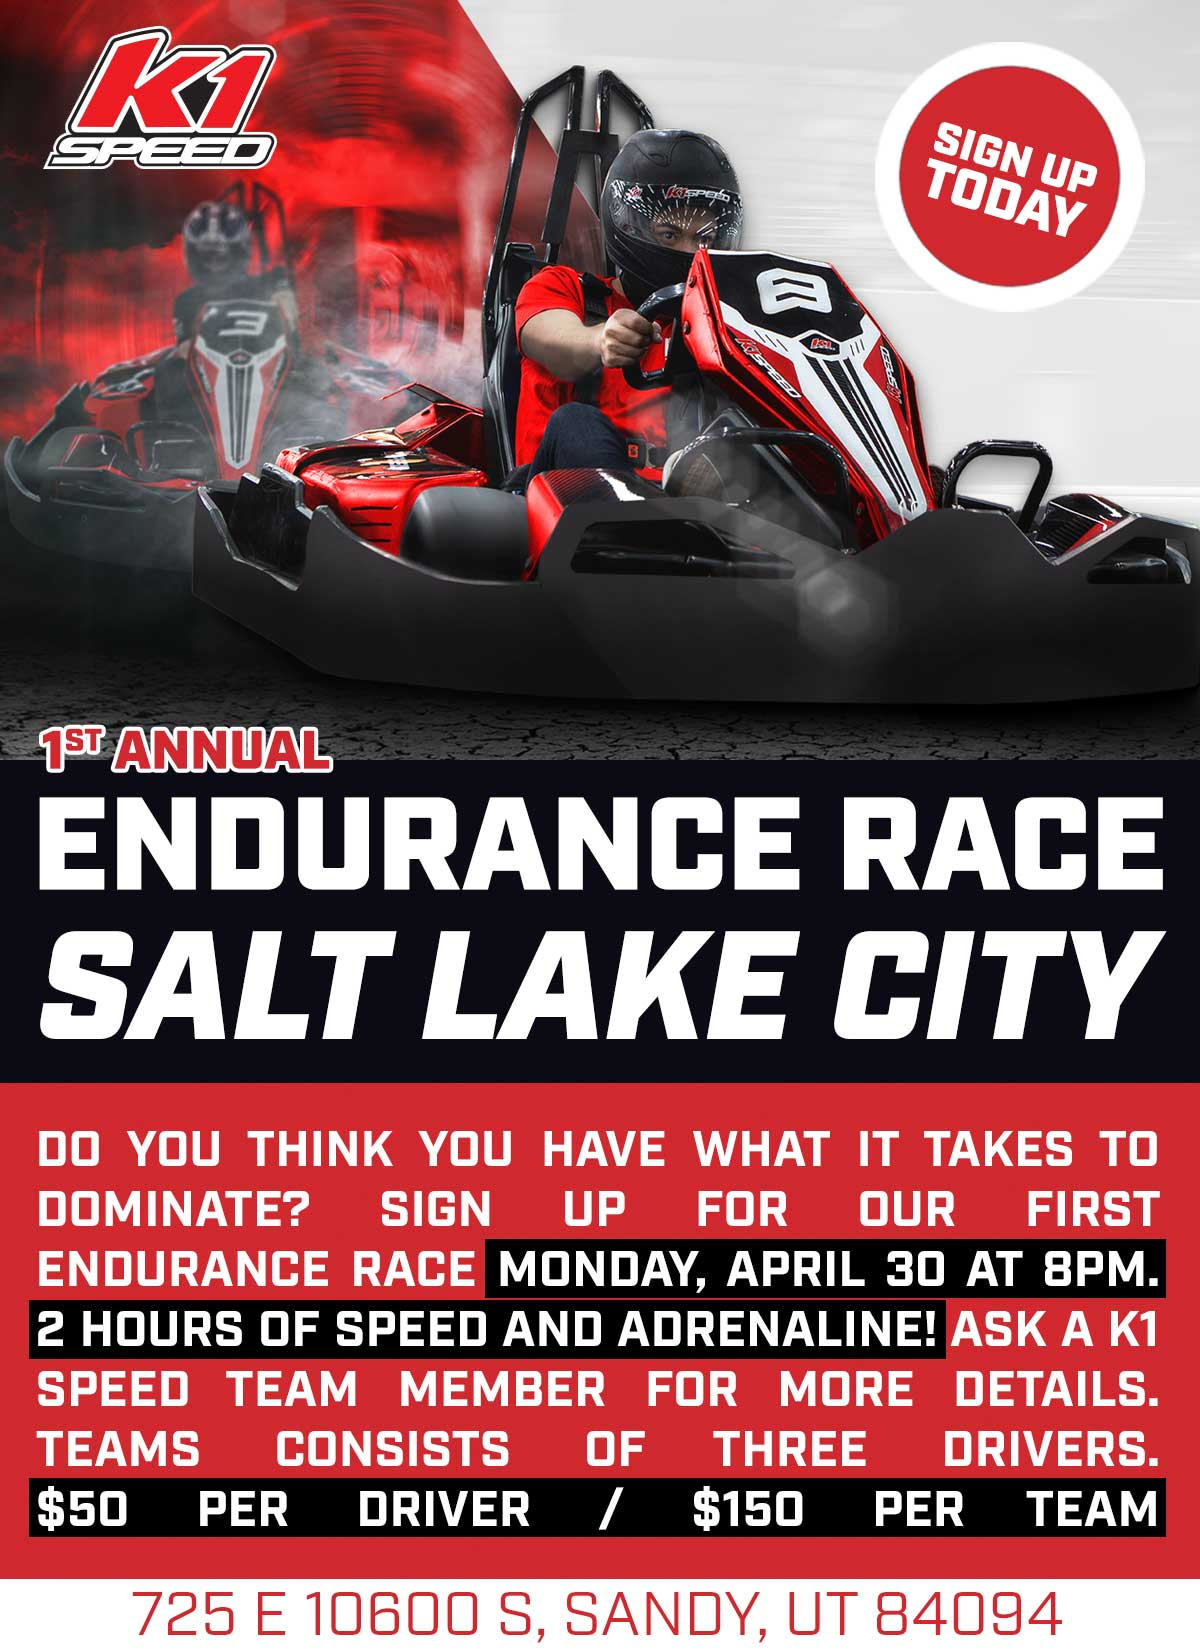 K1 Speed Announcing The First Annual Endurance Race At